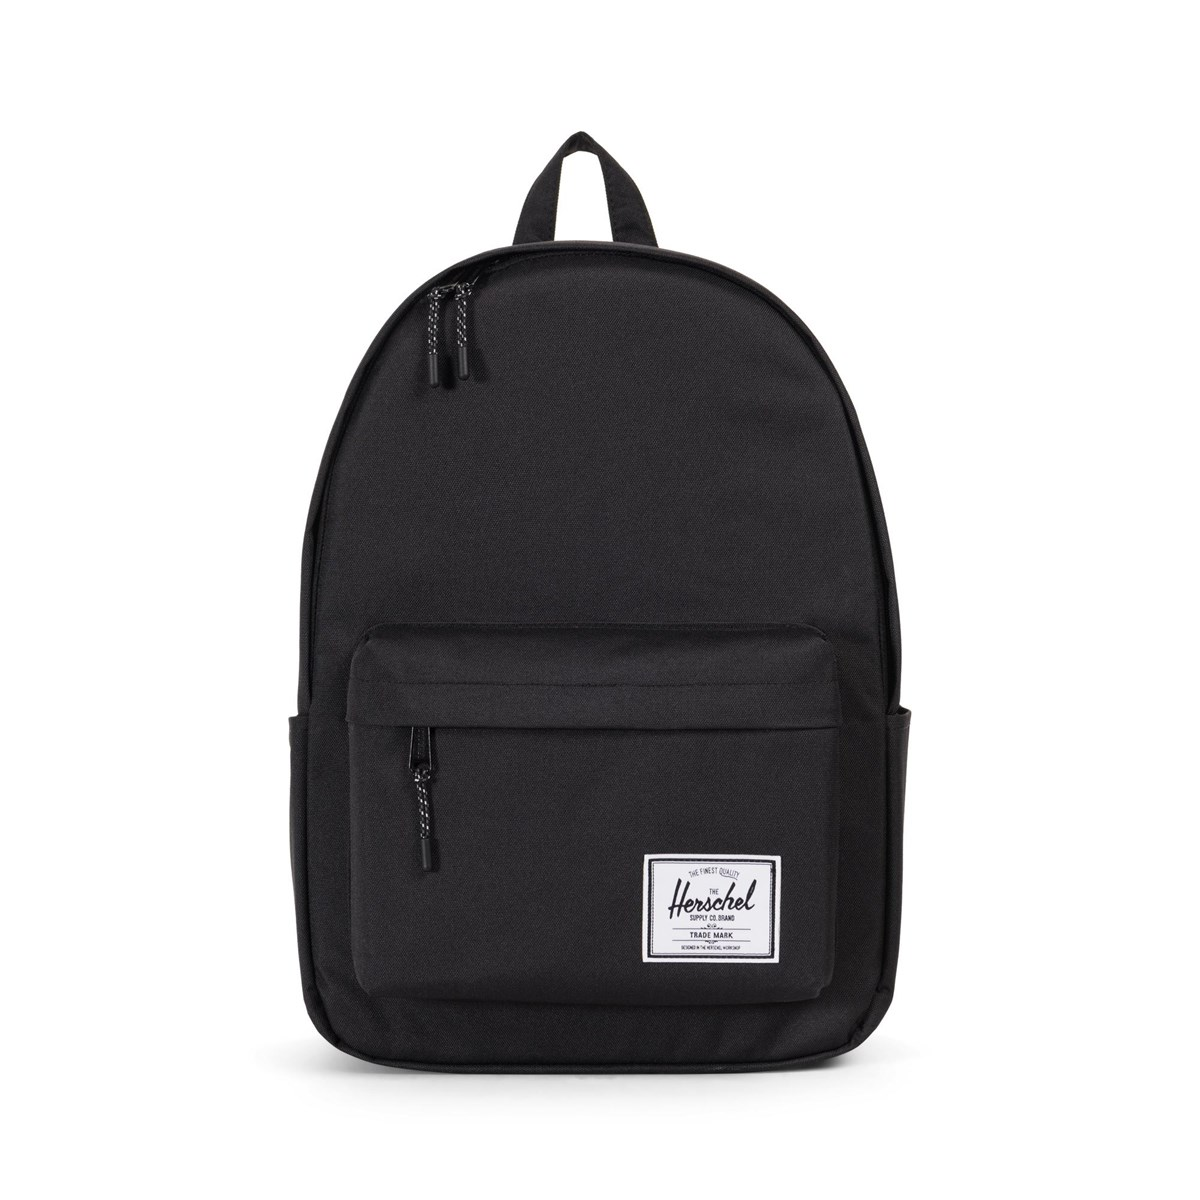 3daf82e78e6 Classic X-Large Backpack in Black